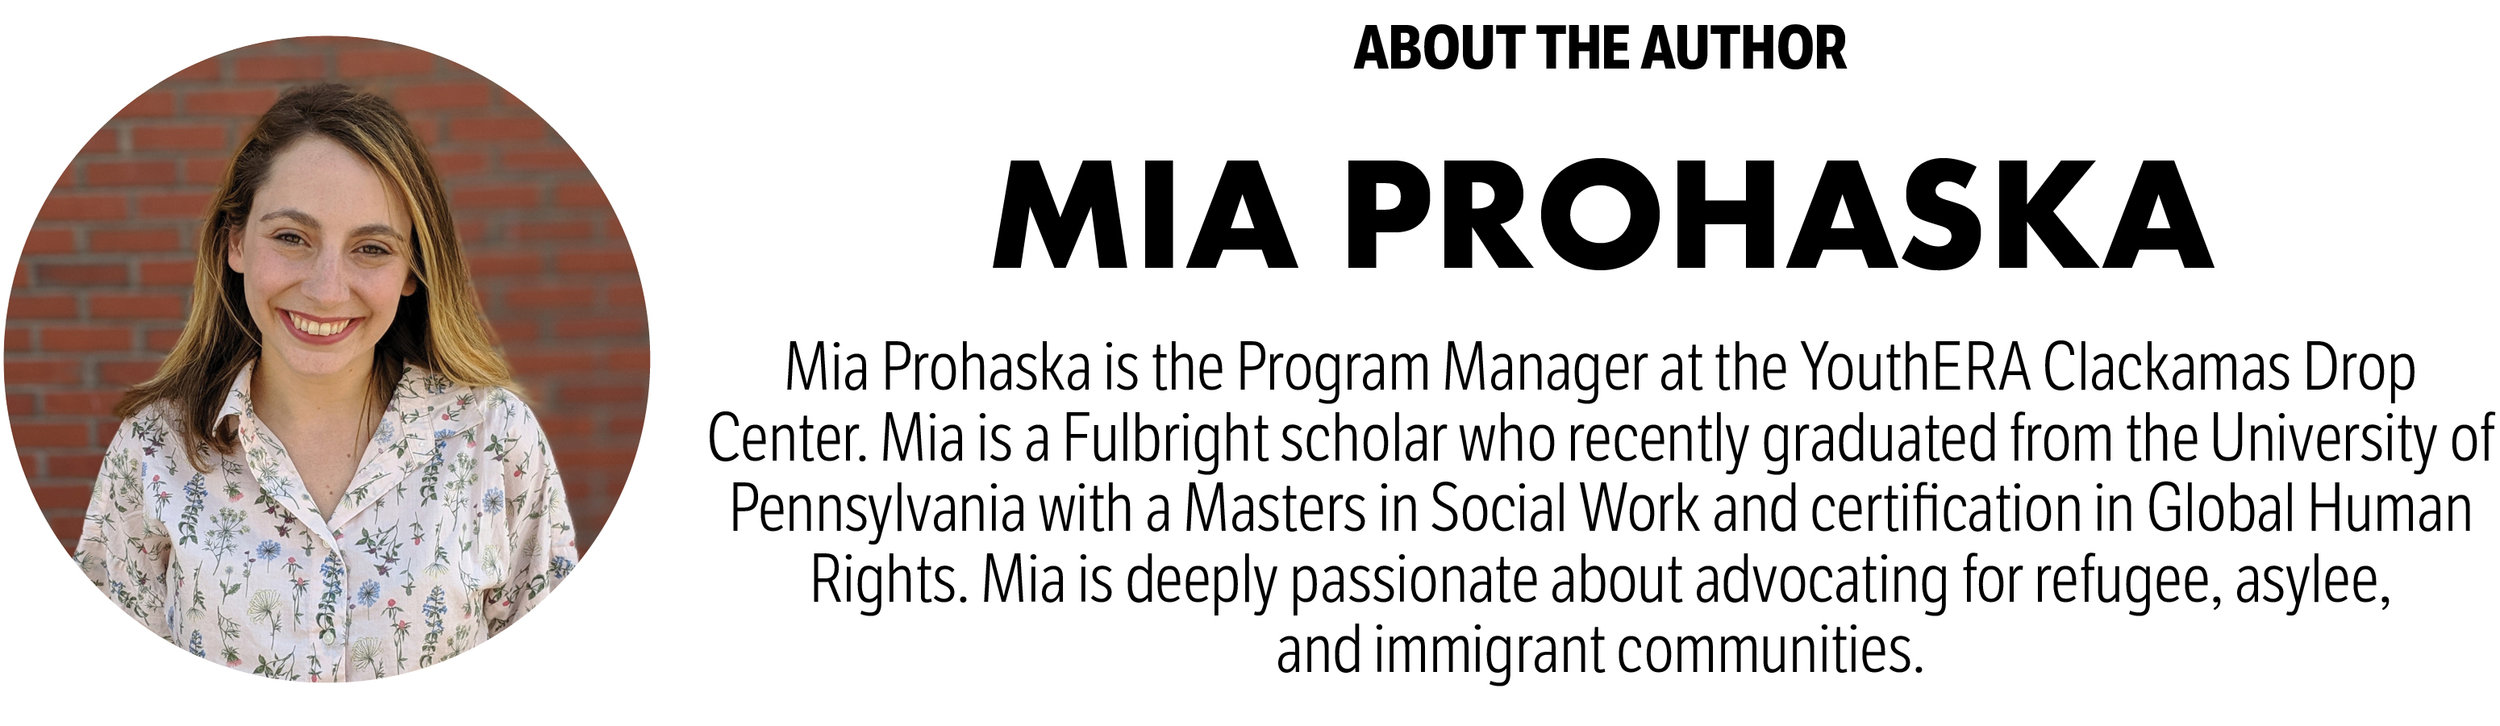 Mia Prohaska Author Profile.jpg